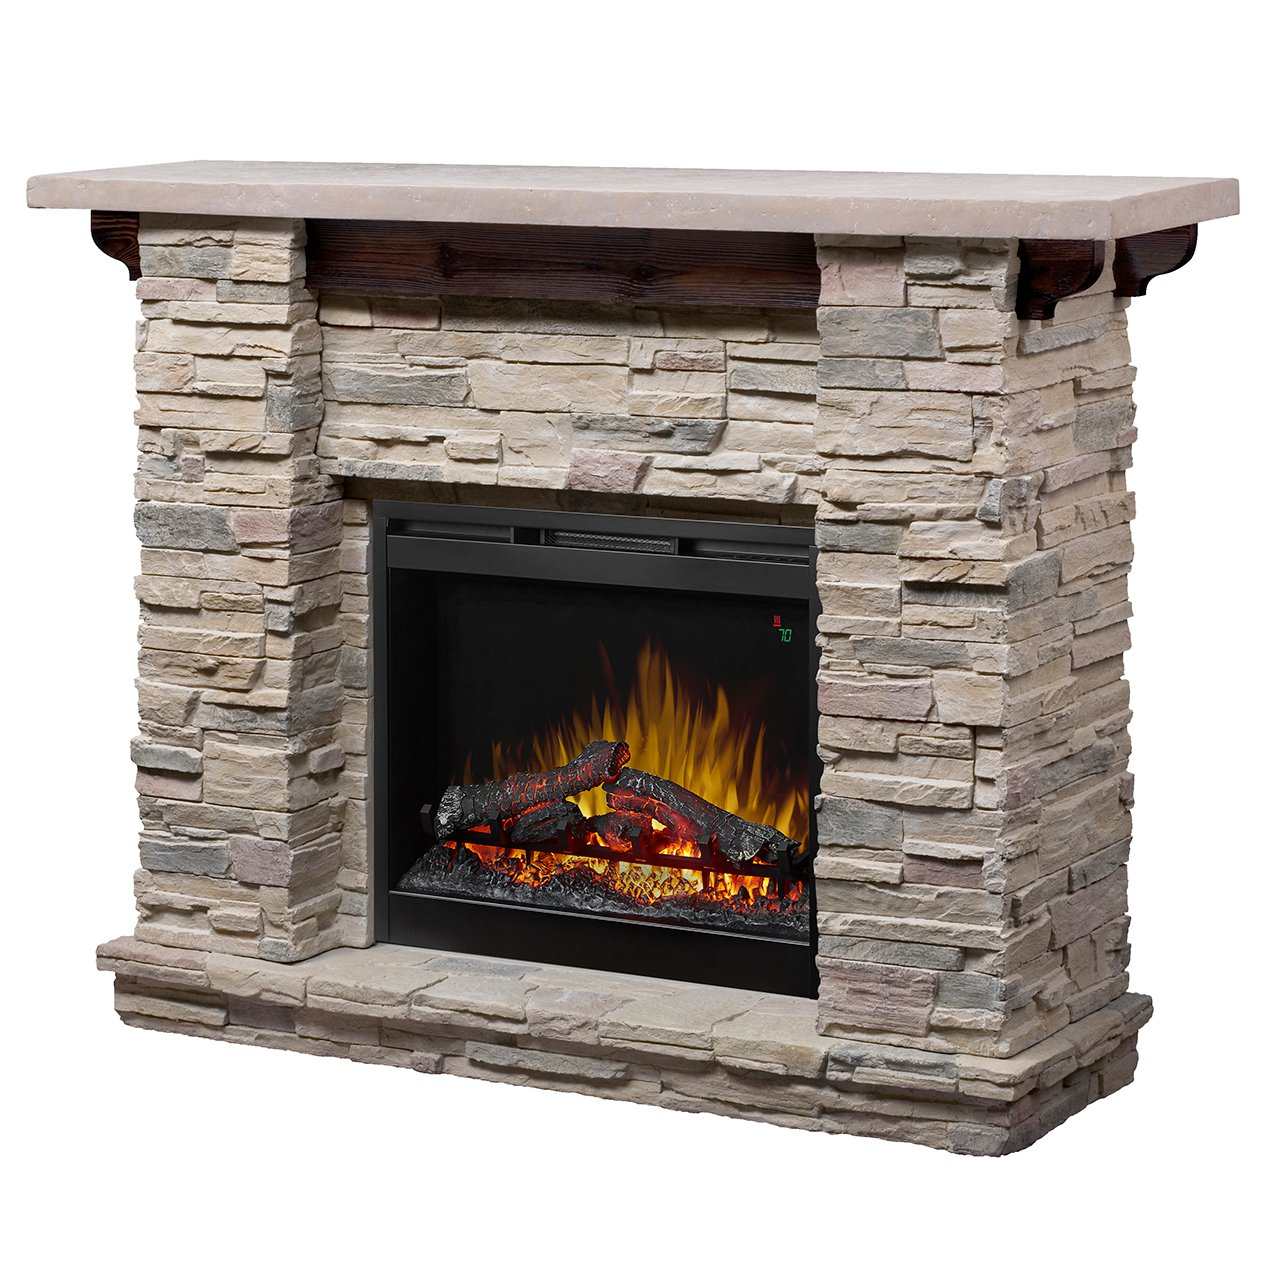 Dimplex Featherston Gds26 1152lr 26 Electric Fireplace Wall Mantel Electric Fireplaces